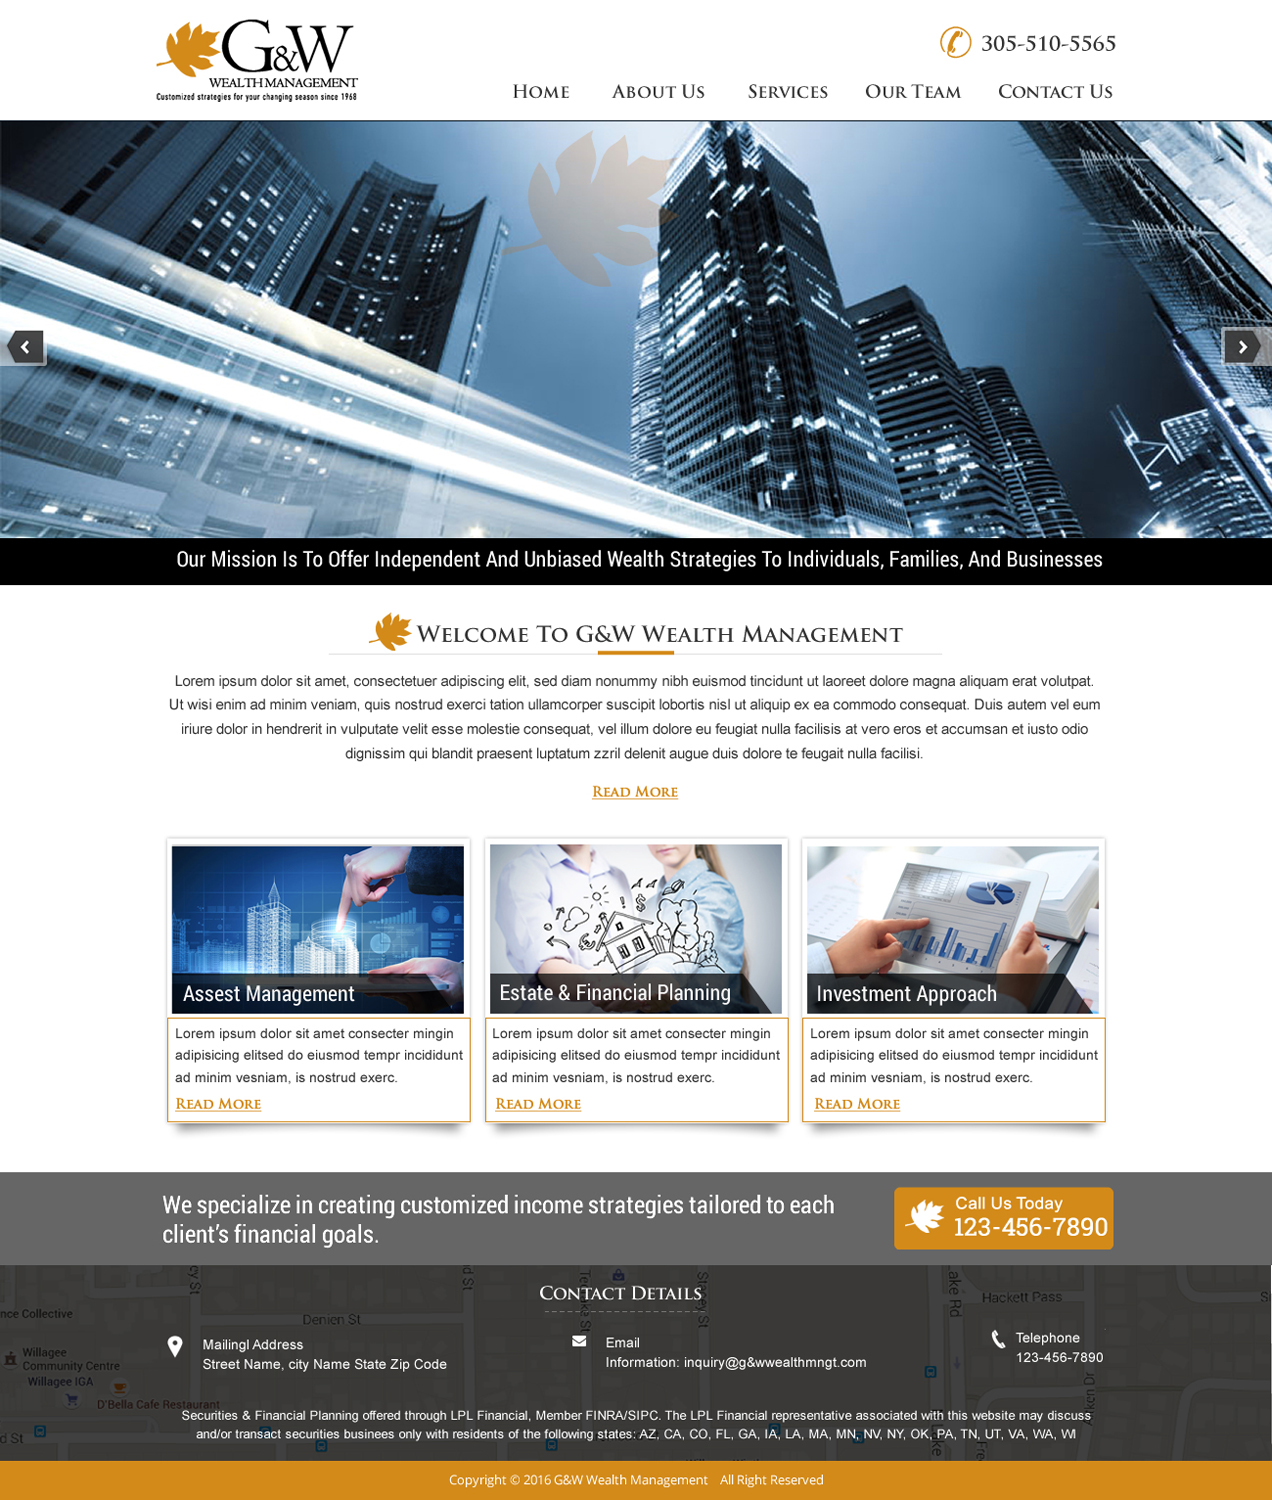 Conservative Upmarket Financial Planning Web Design For A Company By Harmi 199 Design 9576617